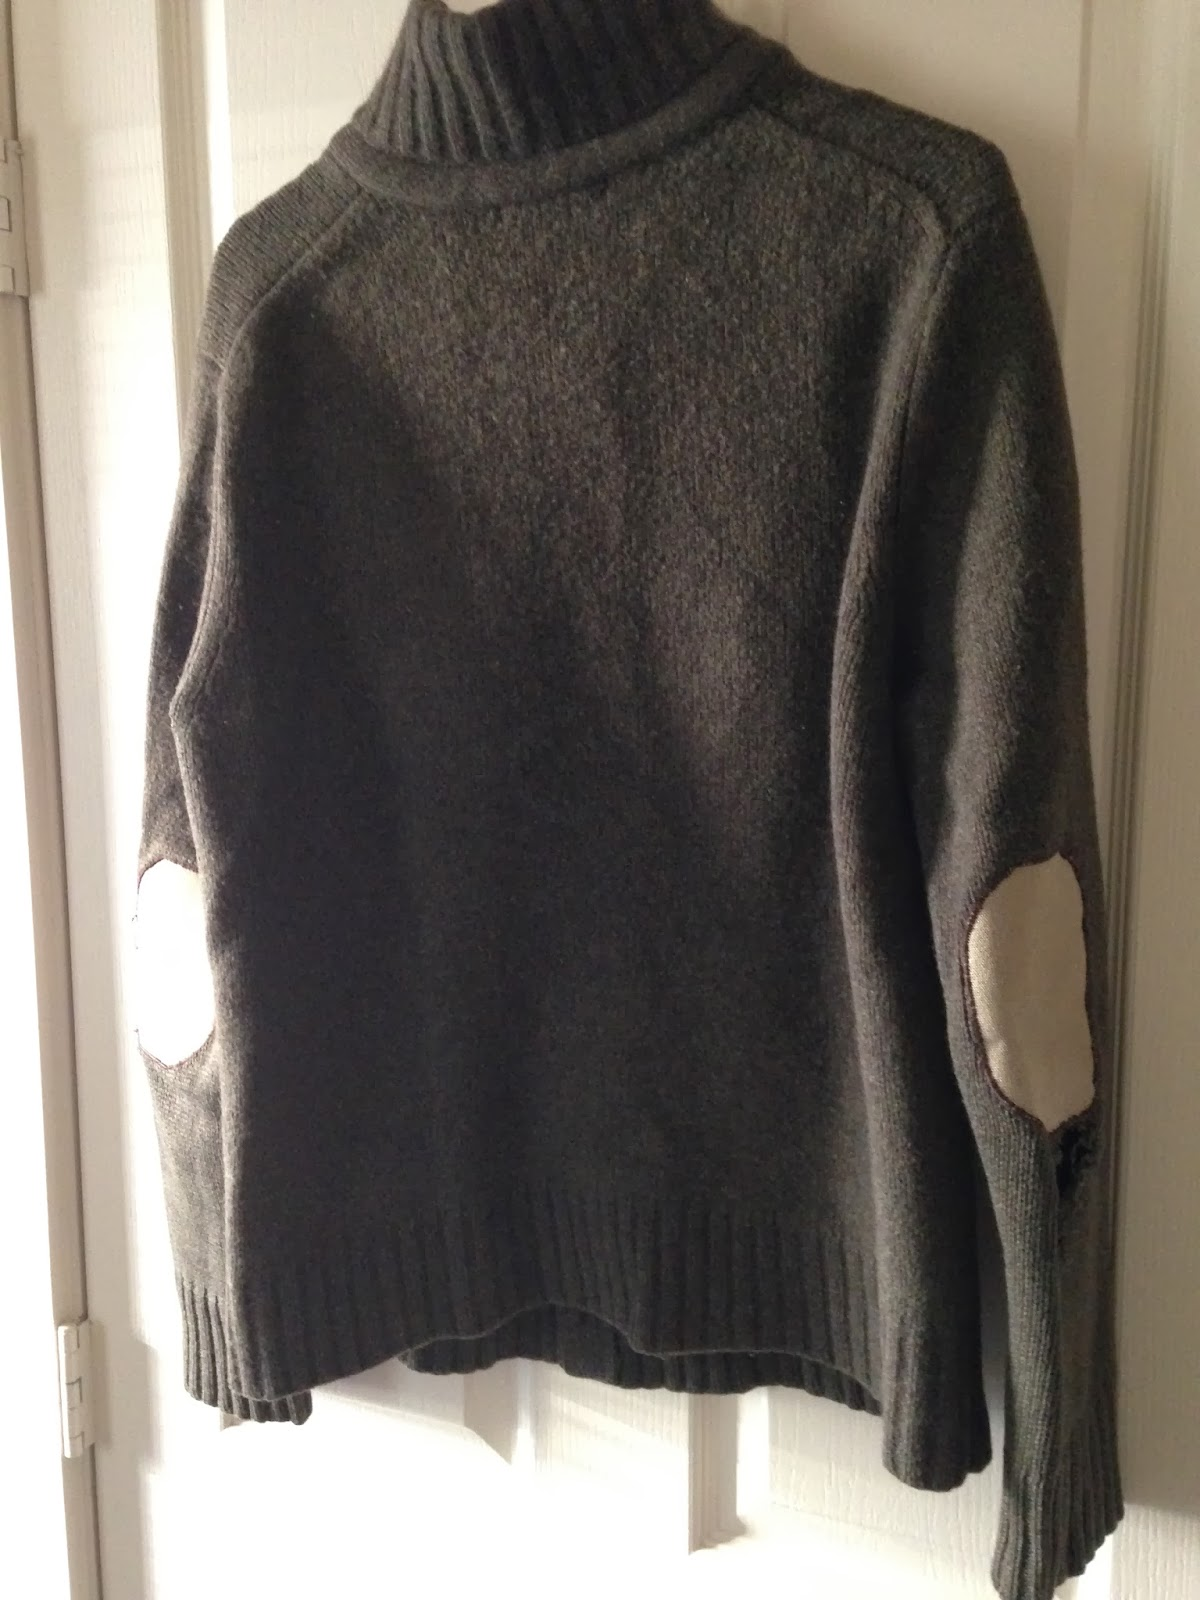 Ulterior Alterations Wool Sweater to Vest Refashion Before